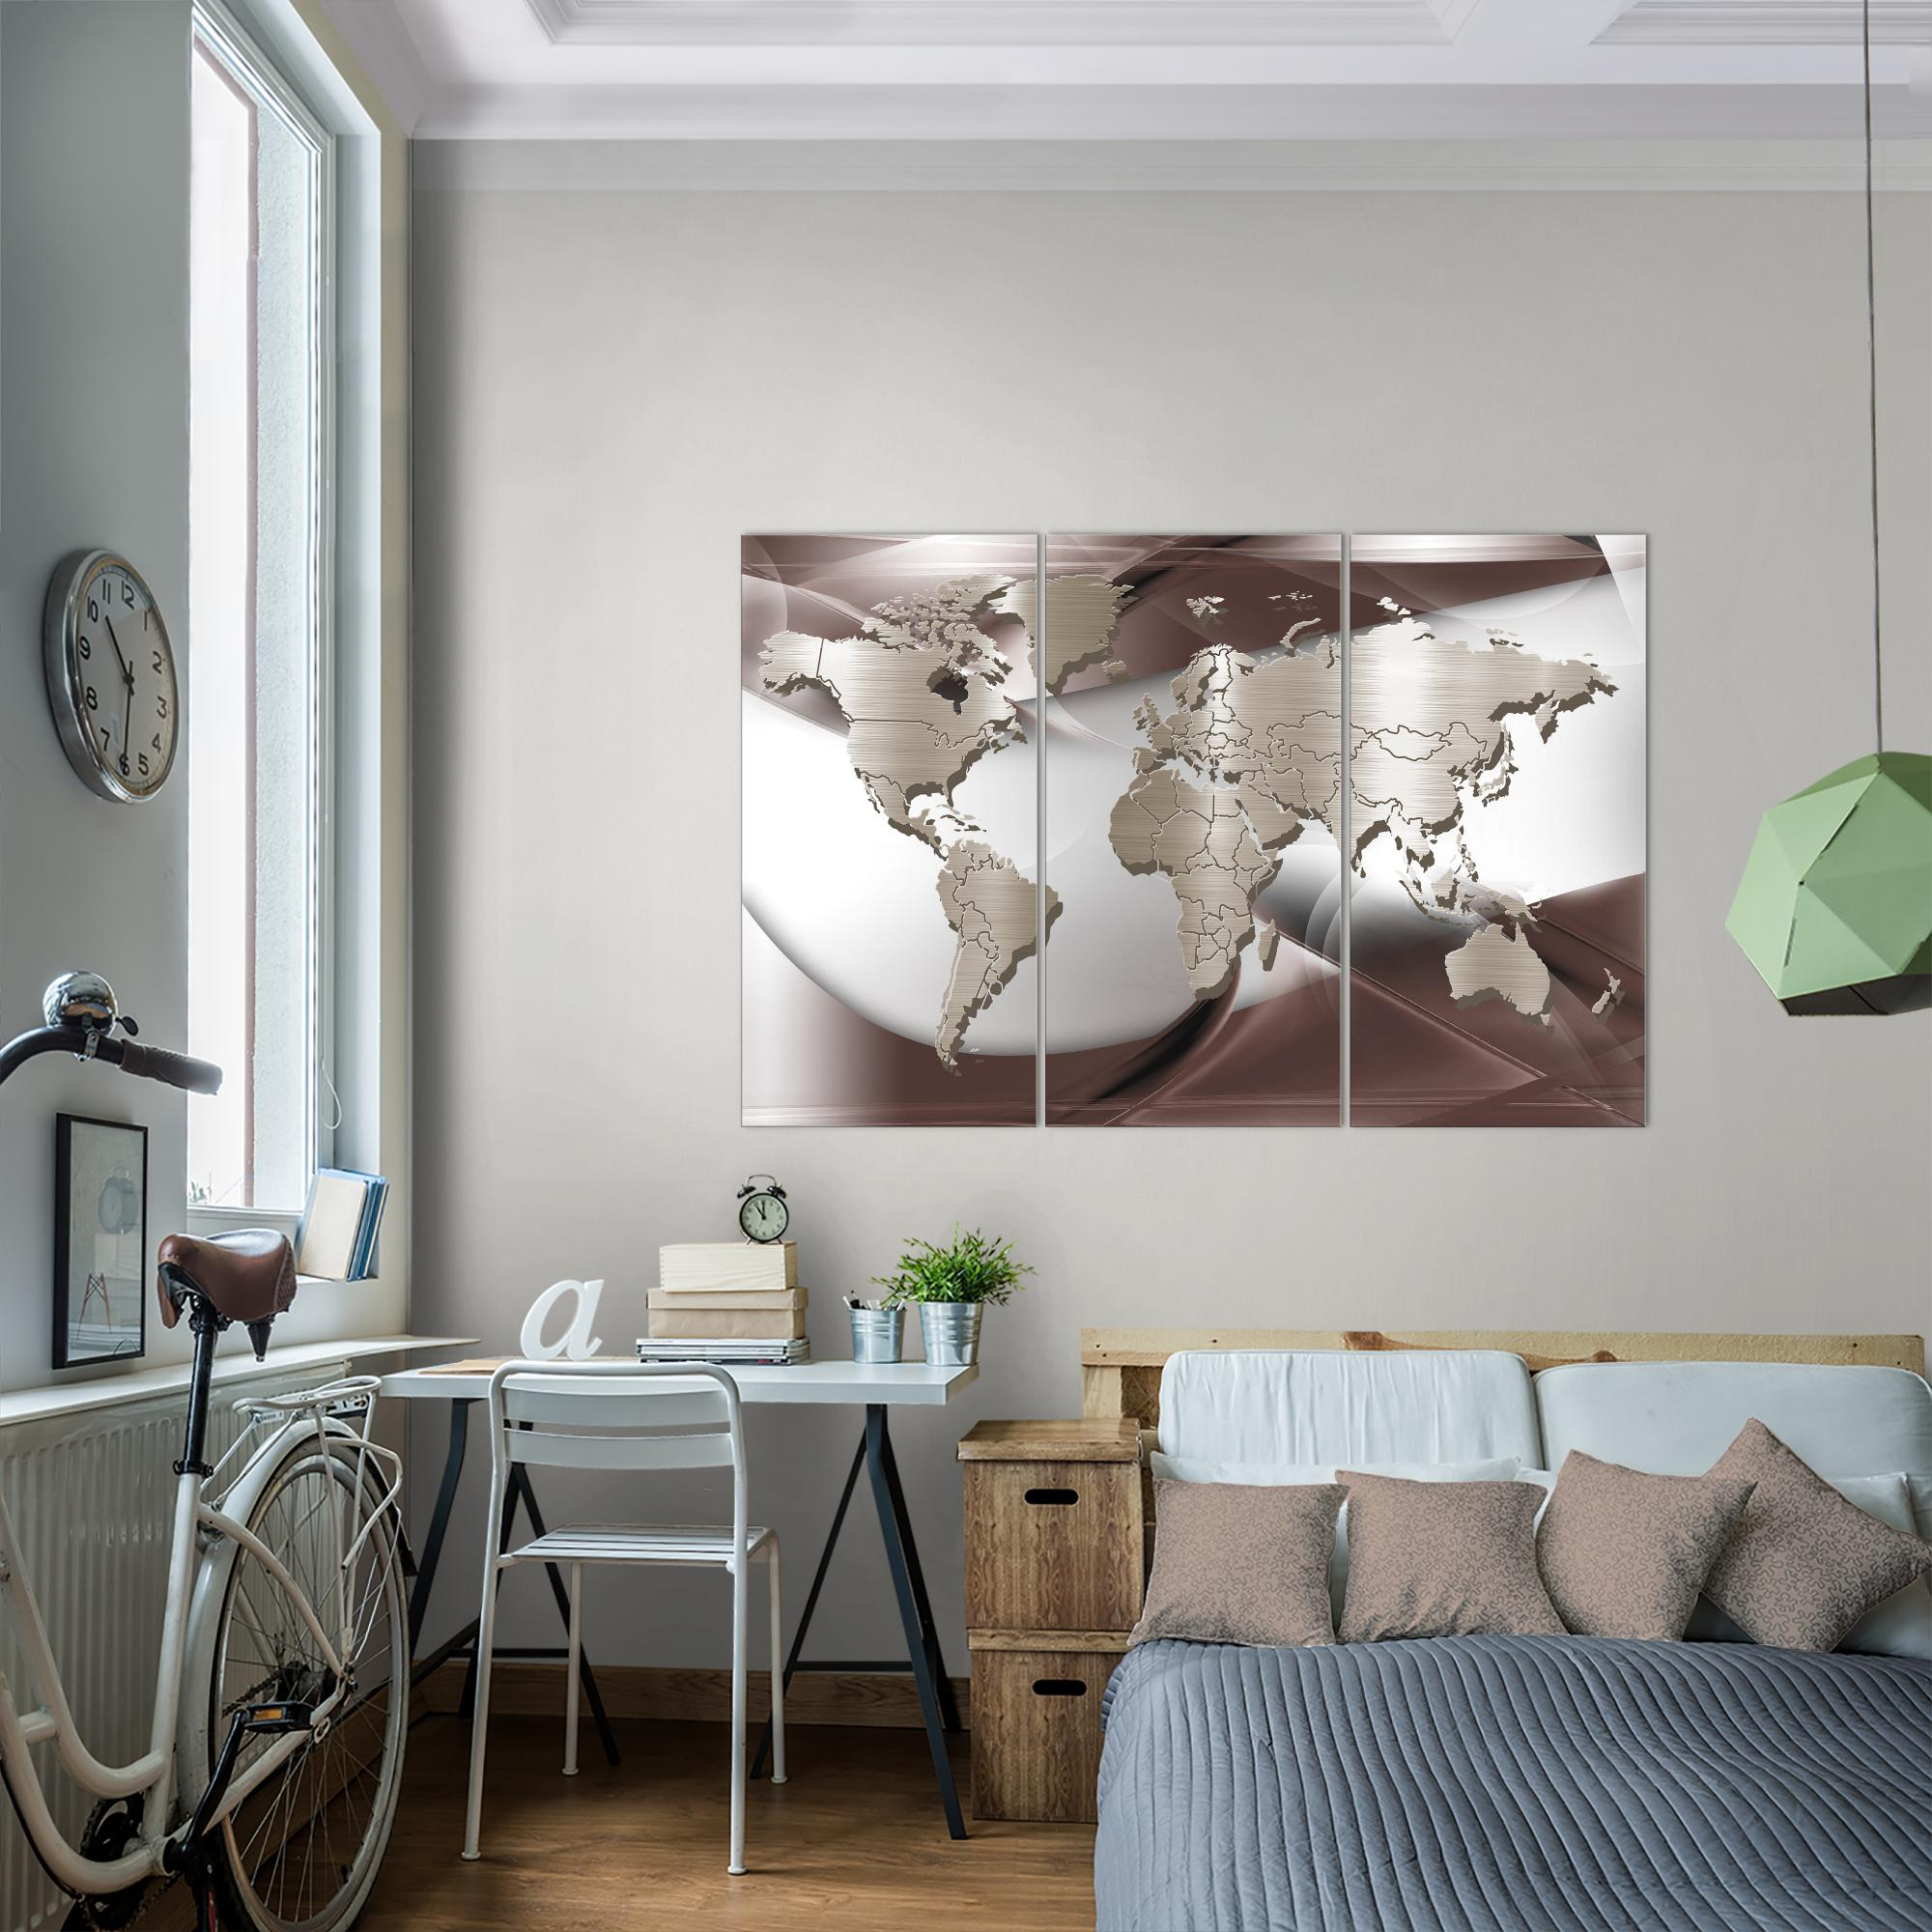 weltkarte world map bild kunstdruck auf vlies leinwand xxl dekoration 109231p. Black Bedroom Furniture Sets. Home Design Ideas